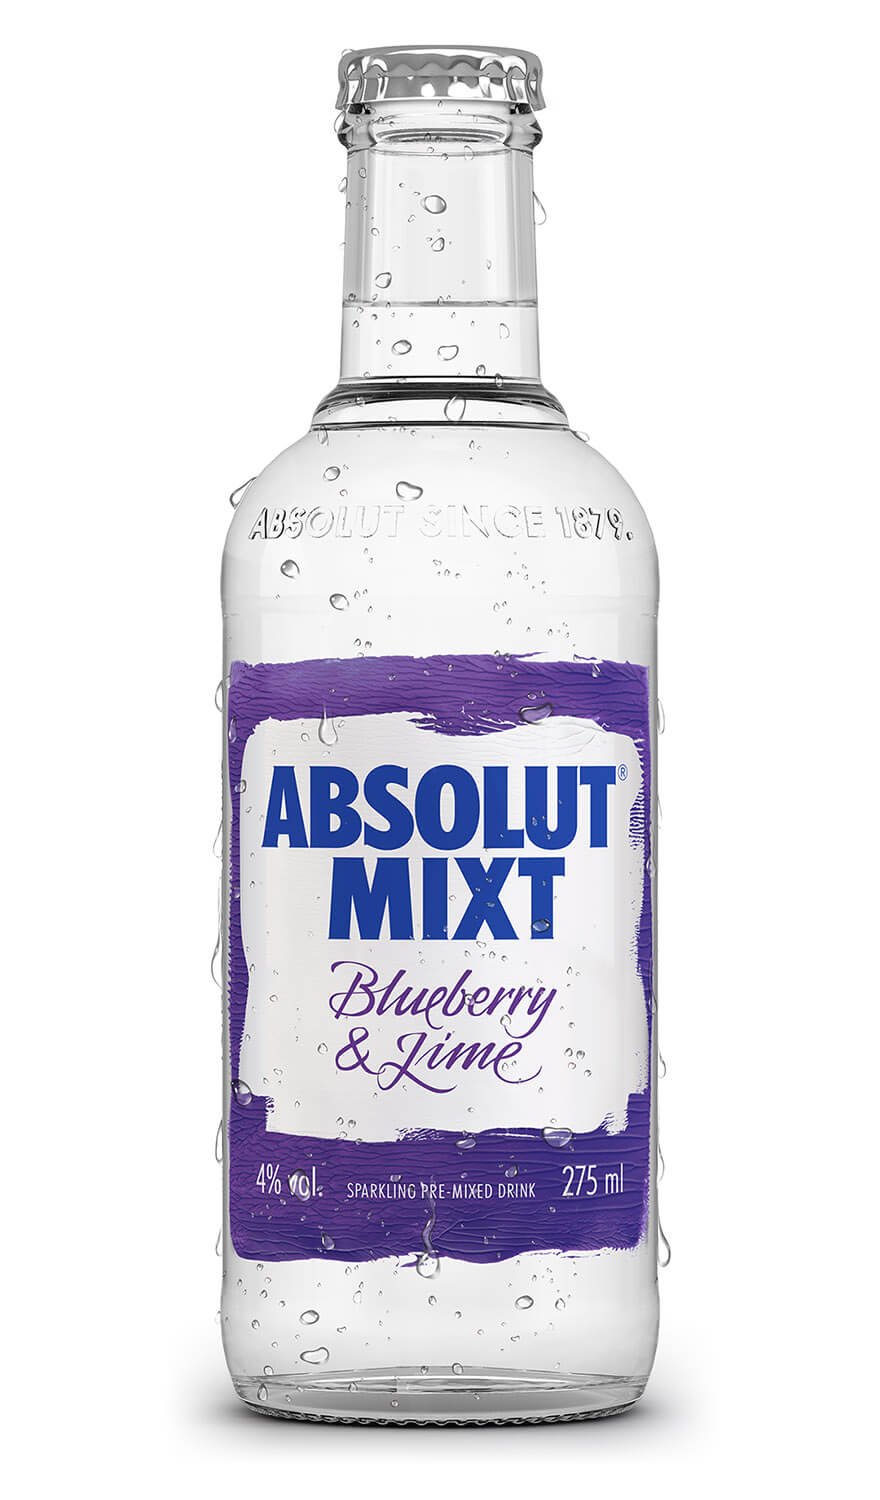 Absolut Mixt Blueberry & Lime